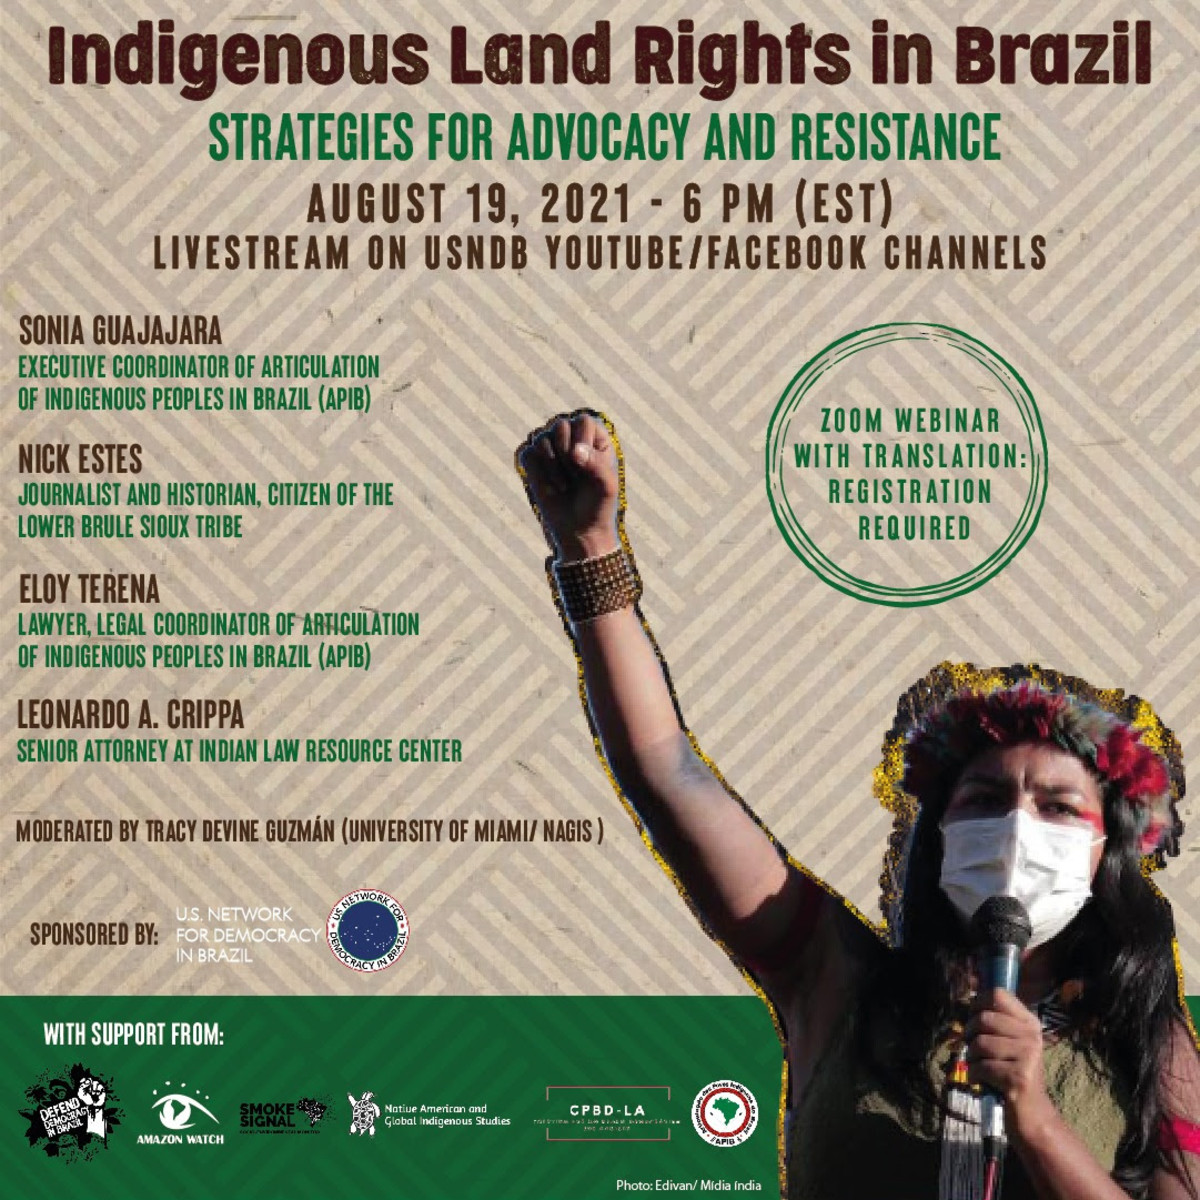 Indigenous land rights in Brazil : Strategies for advocacy and resistance webinar is to be livestreamed August 19 on YouTube and Facebook.